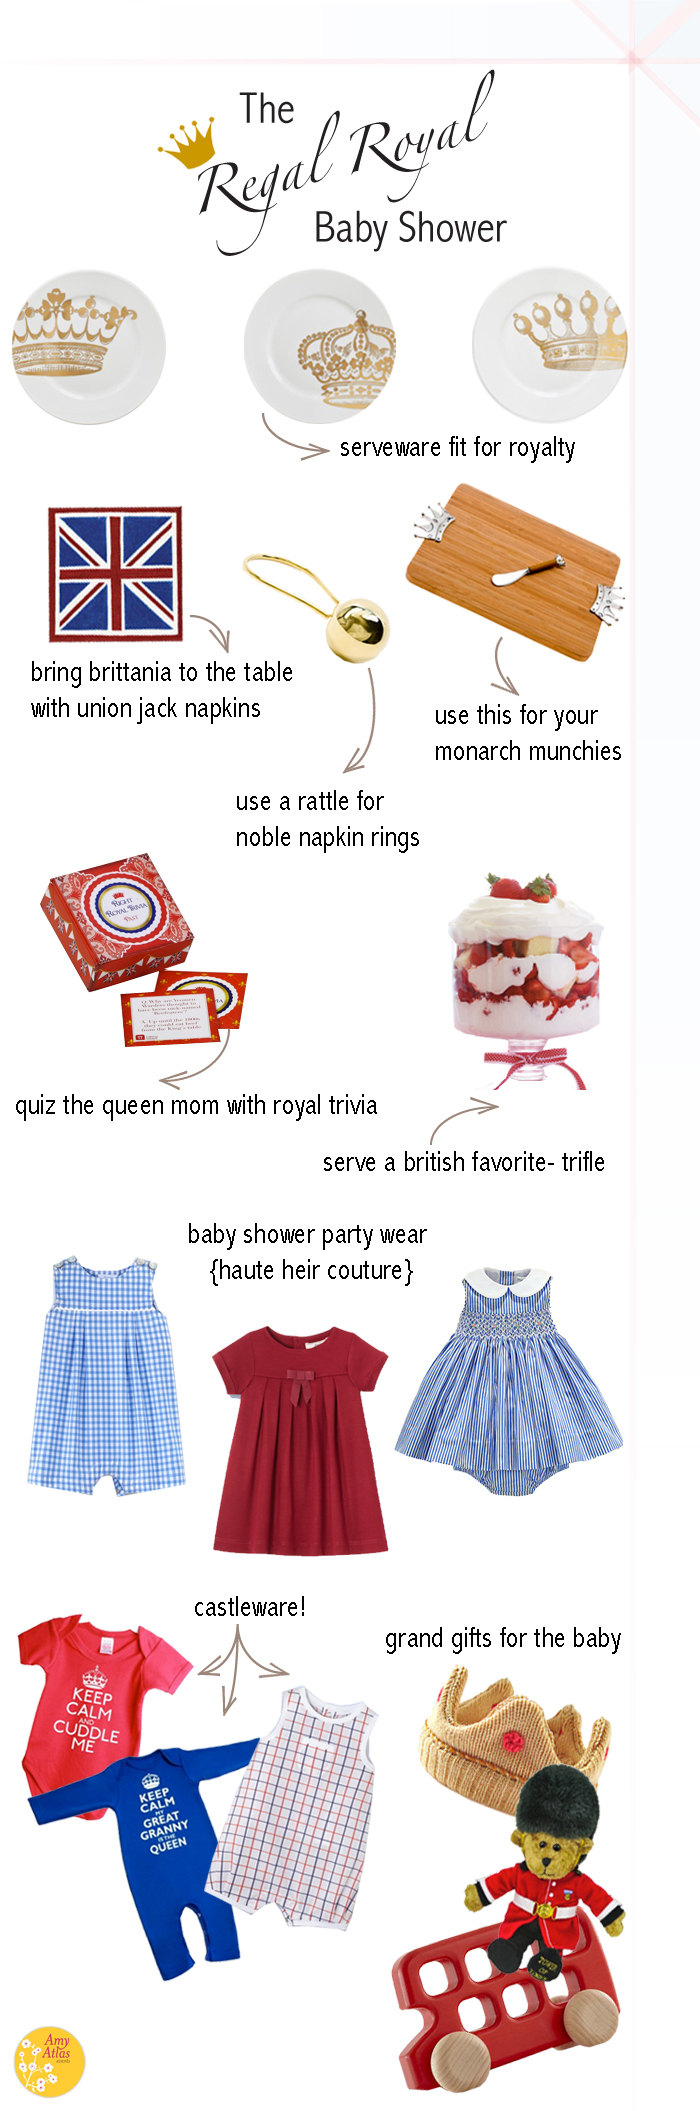 royal baby party How to Throw a Regal Royal Baby Shower